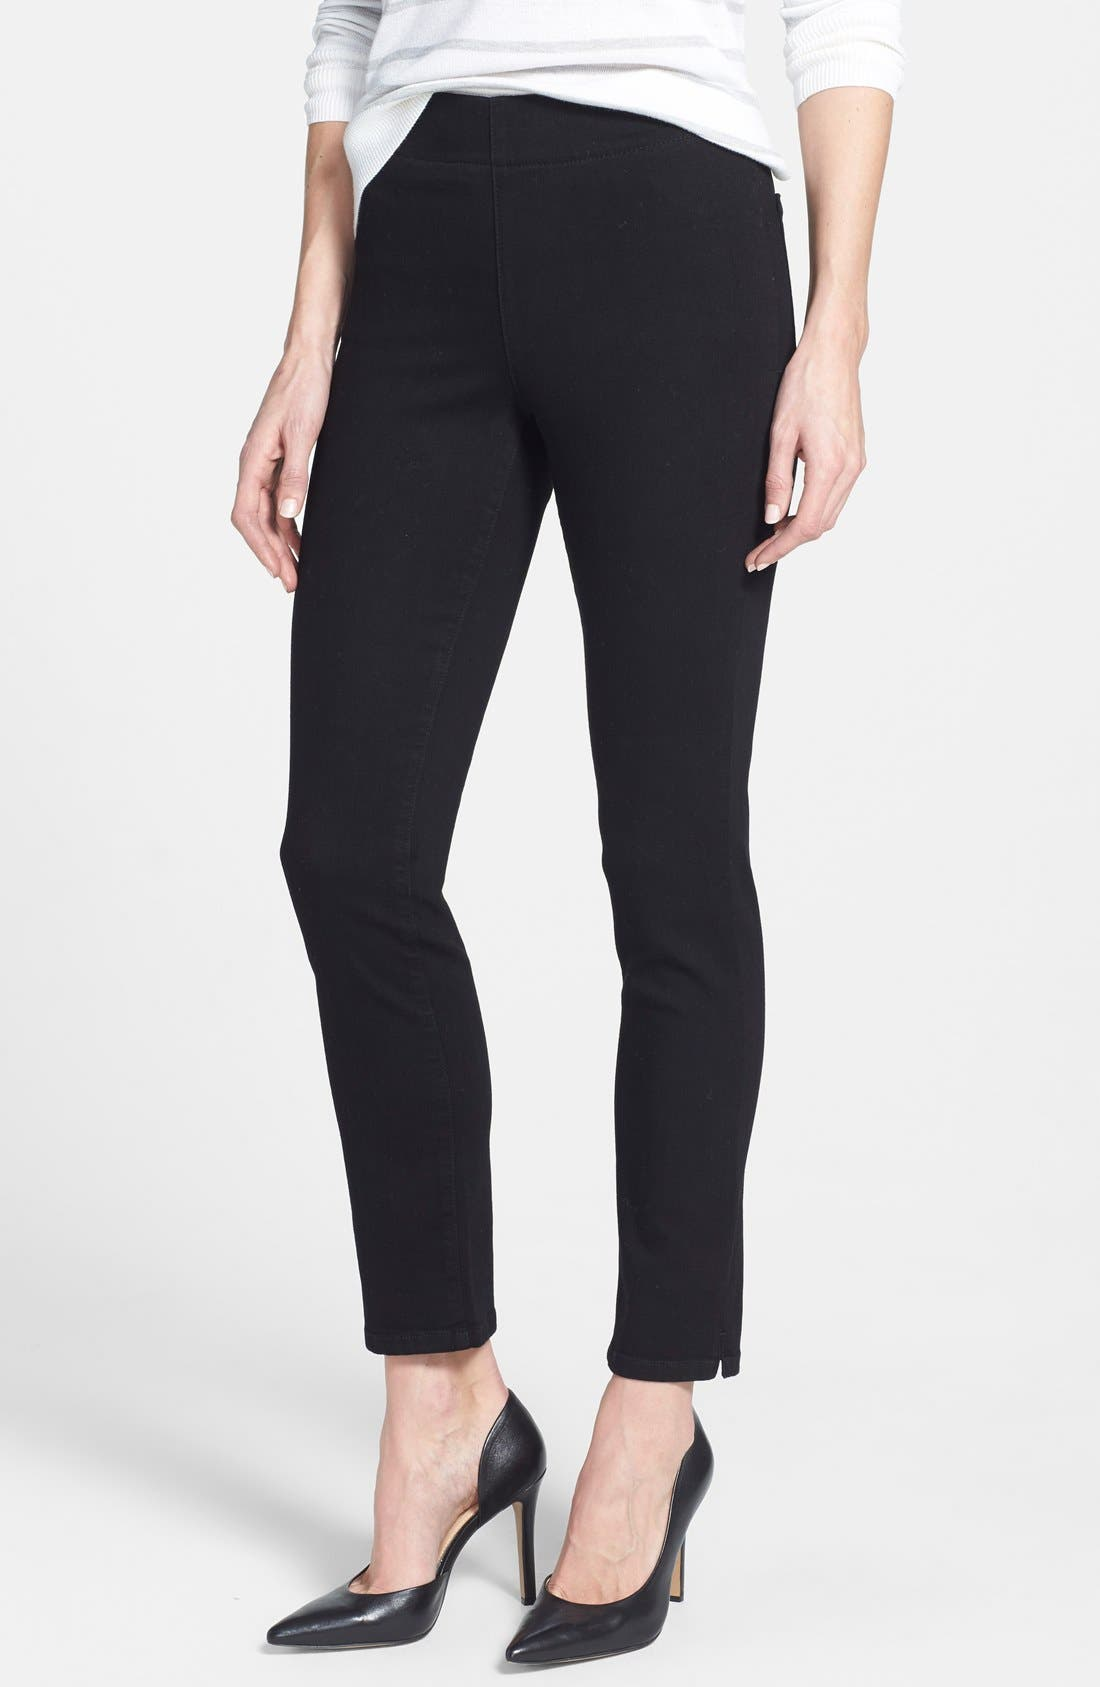 Alternate Image 1 Selected - NYDJ Alina Stretch Ankle Jeans (Black) (Regular & Petite)